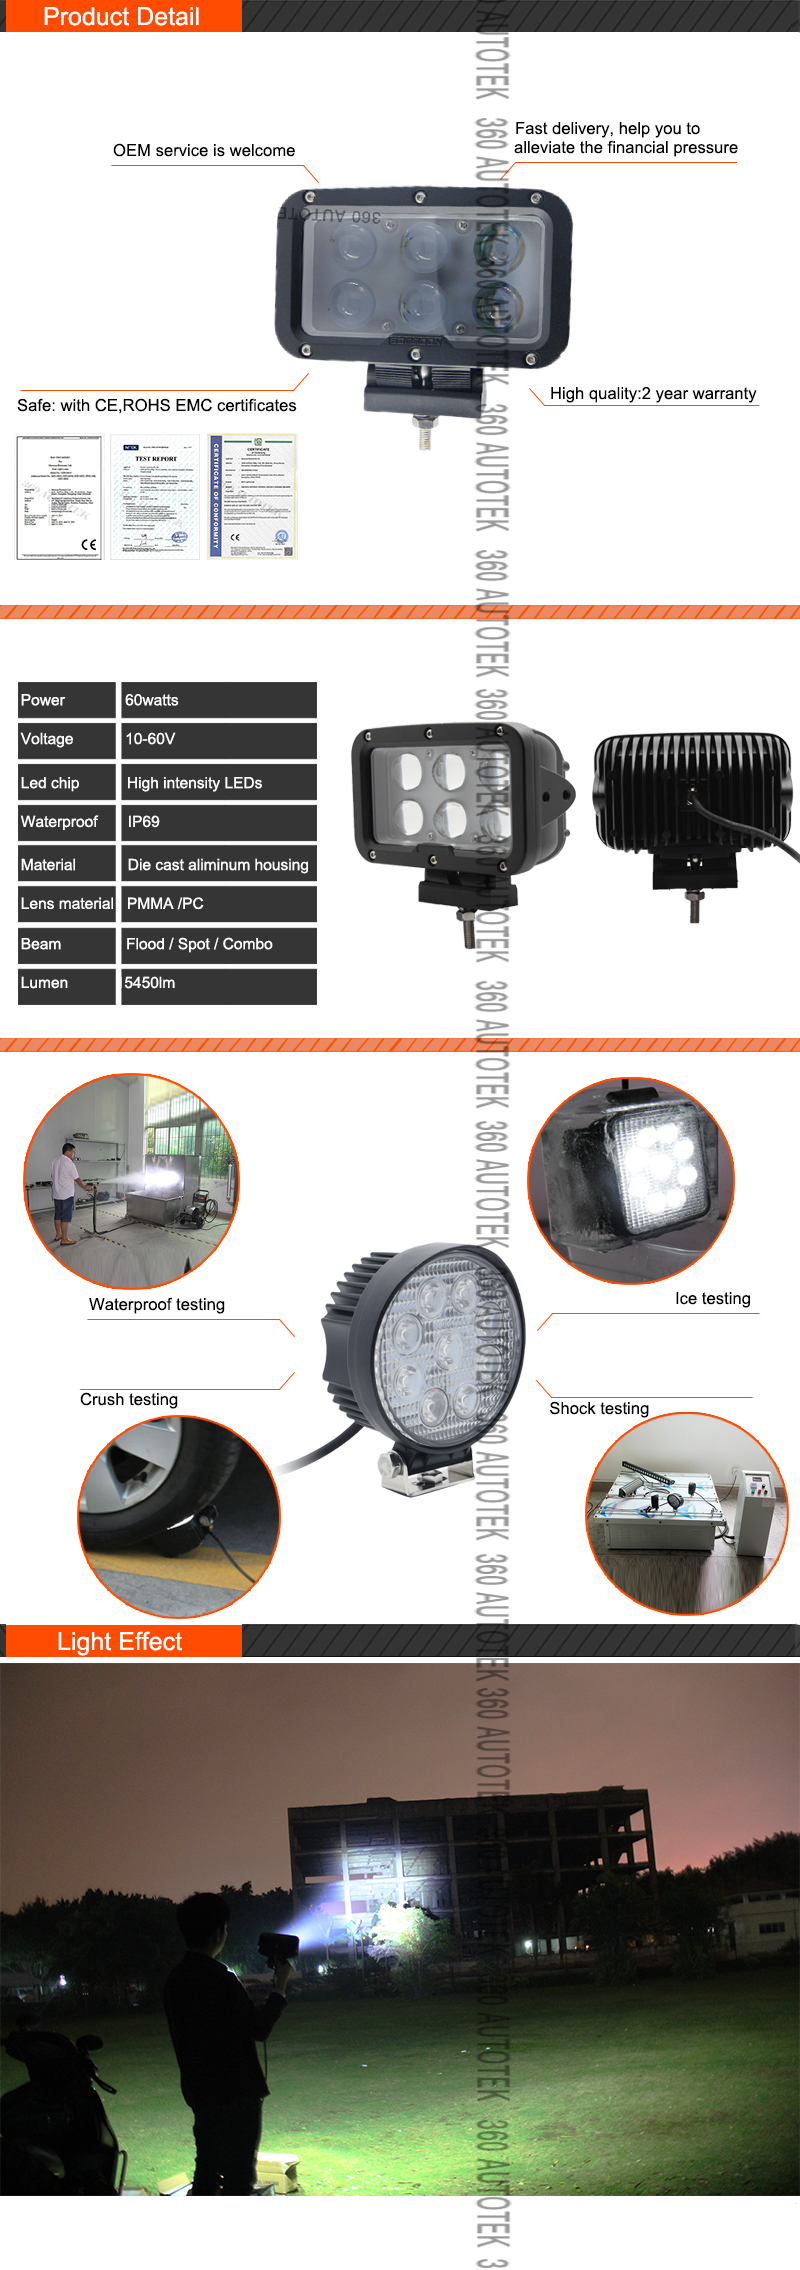 China Wholesale 60w Led Work Lamps, 60 Watt Led Work Lamp,12v Led Work Light 60w (4).jpg